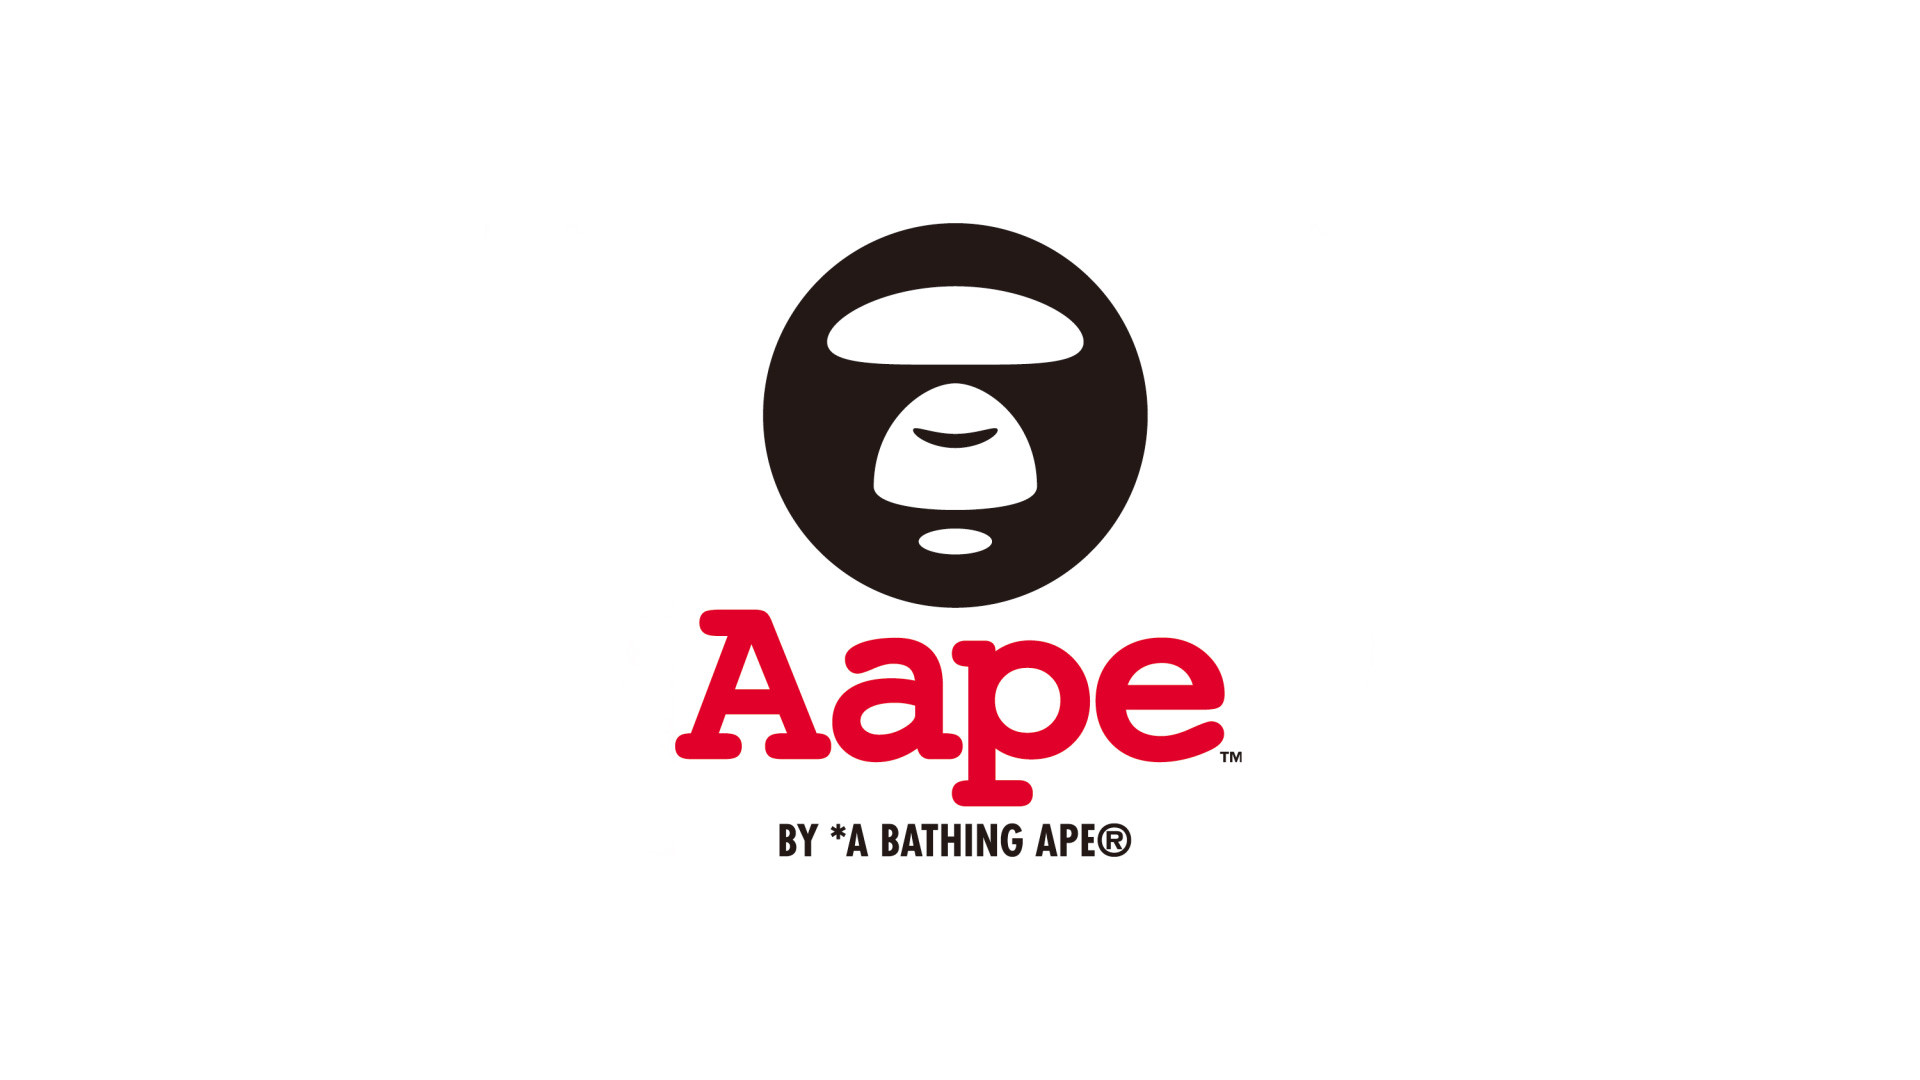 Bathing Ape Wallpaper Iphone X Bathing Ape Wallpaper 54 Images